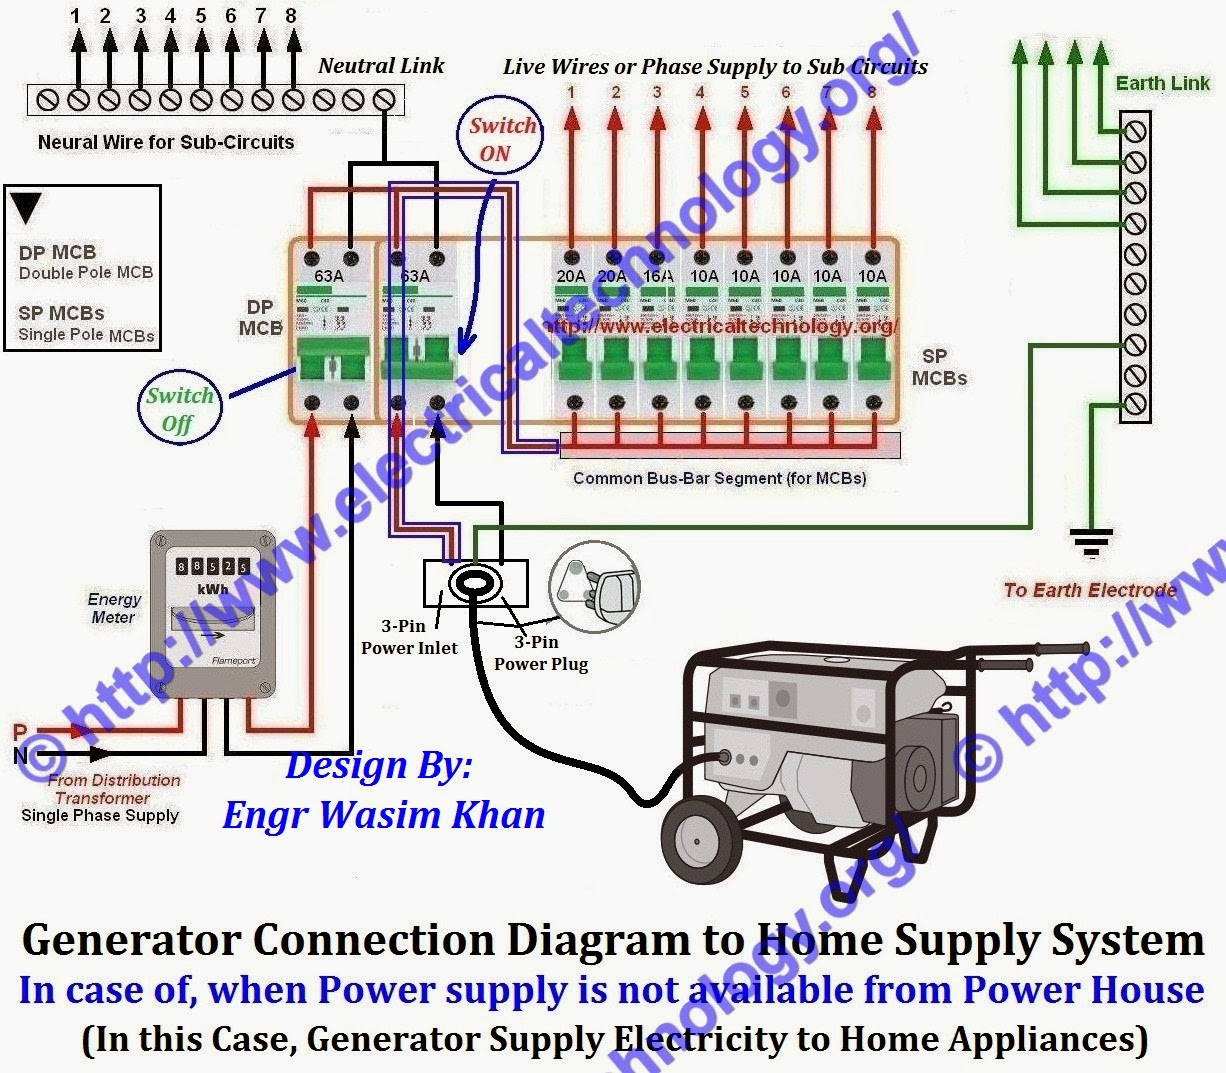 Generator Connection Diagram to Home Supply (With Separate MCB)